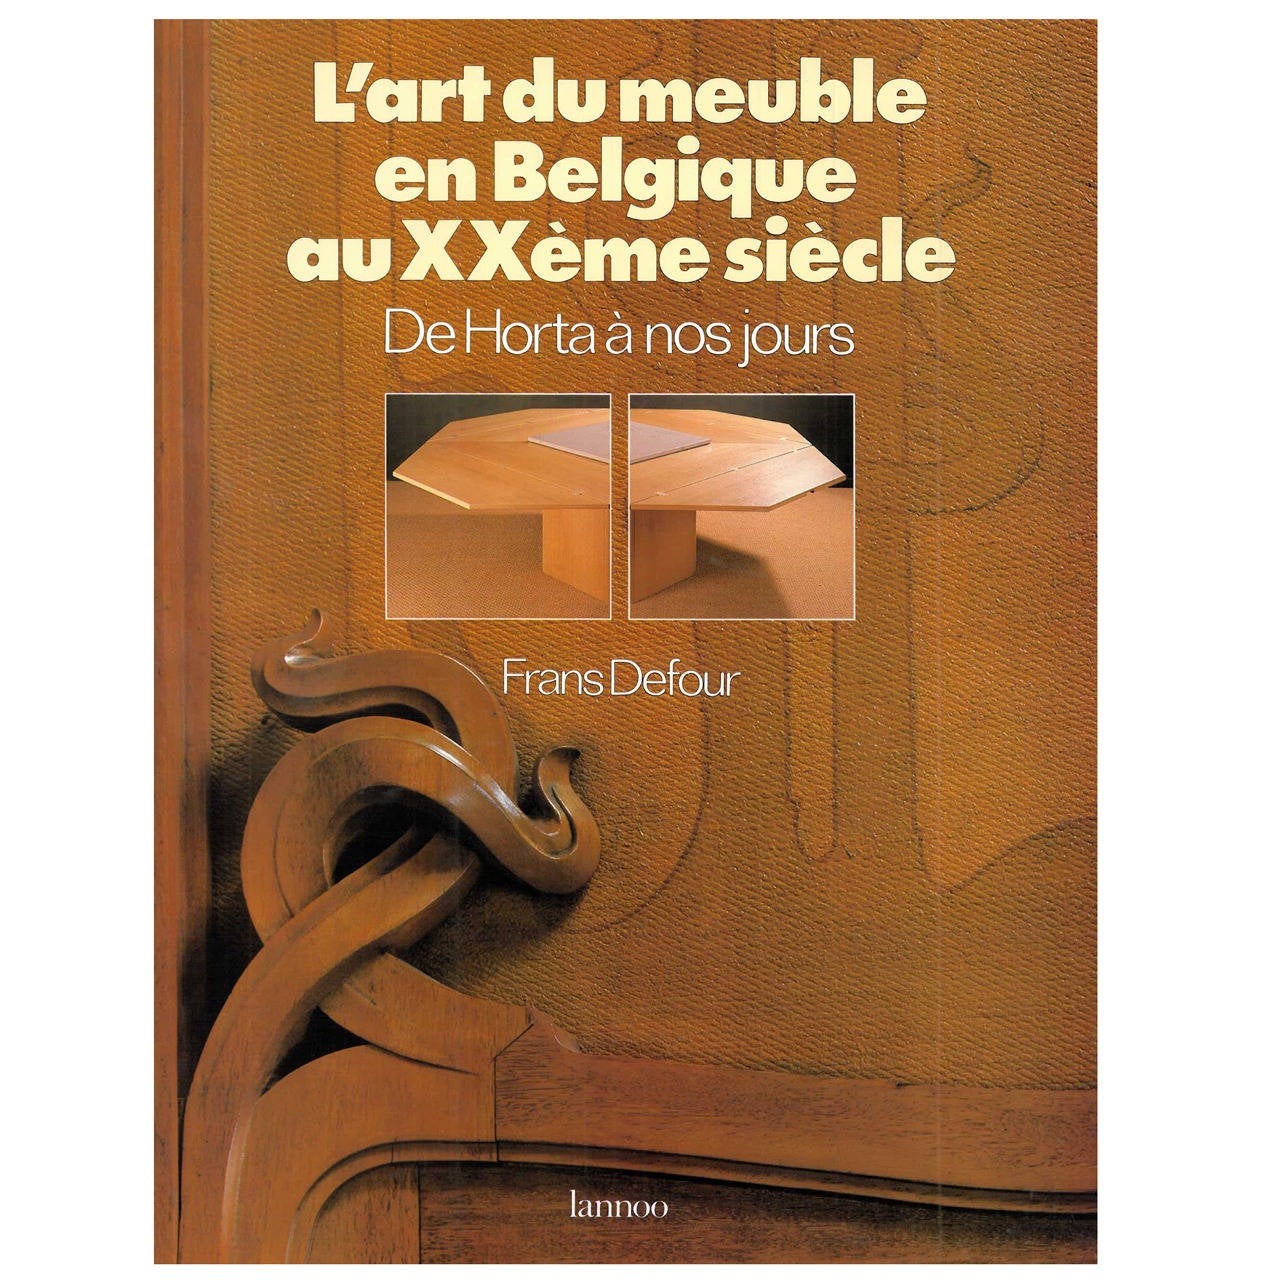 L 39 art du meuble en belgique au xxeme siecle book at 1stdibs for Meuble en belgique